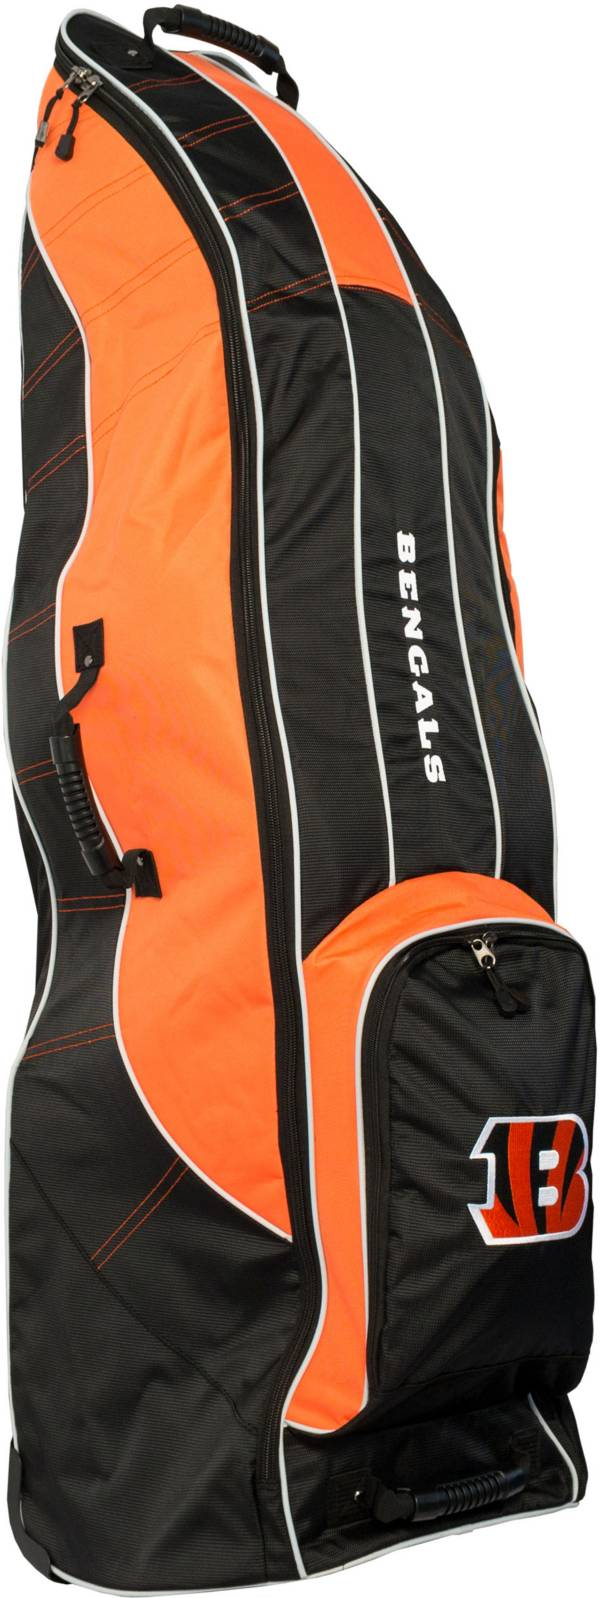 Team Golf Cincinnati Bengals Travel Cover product image